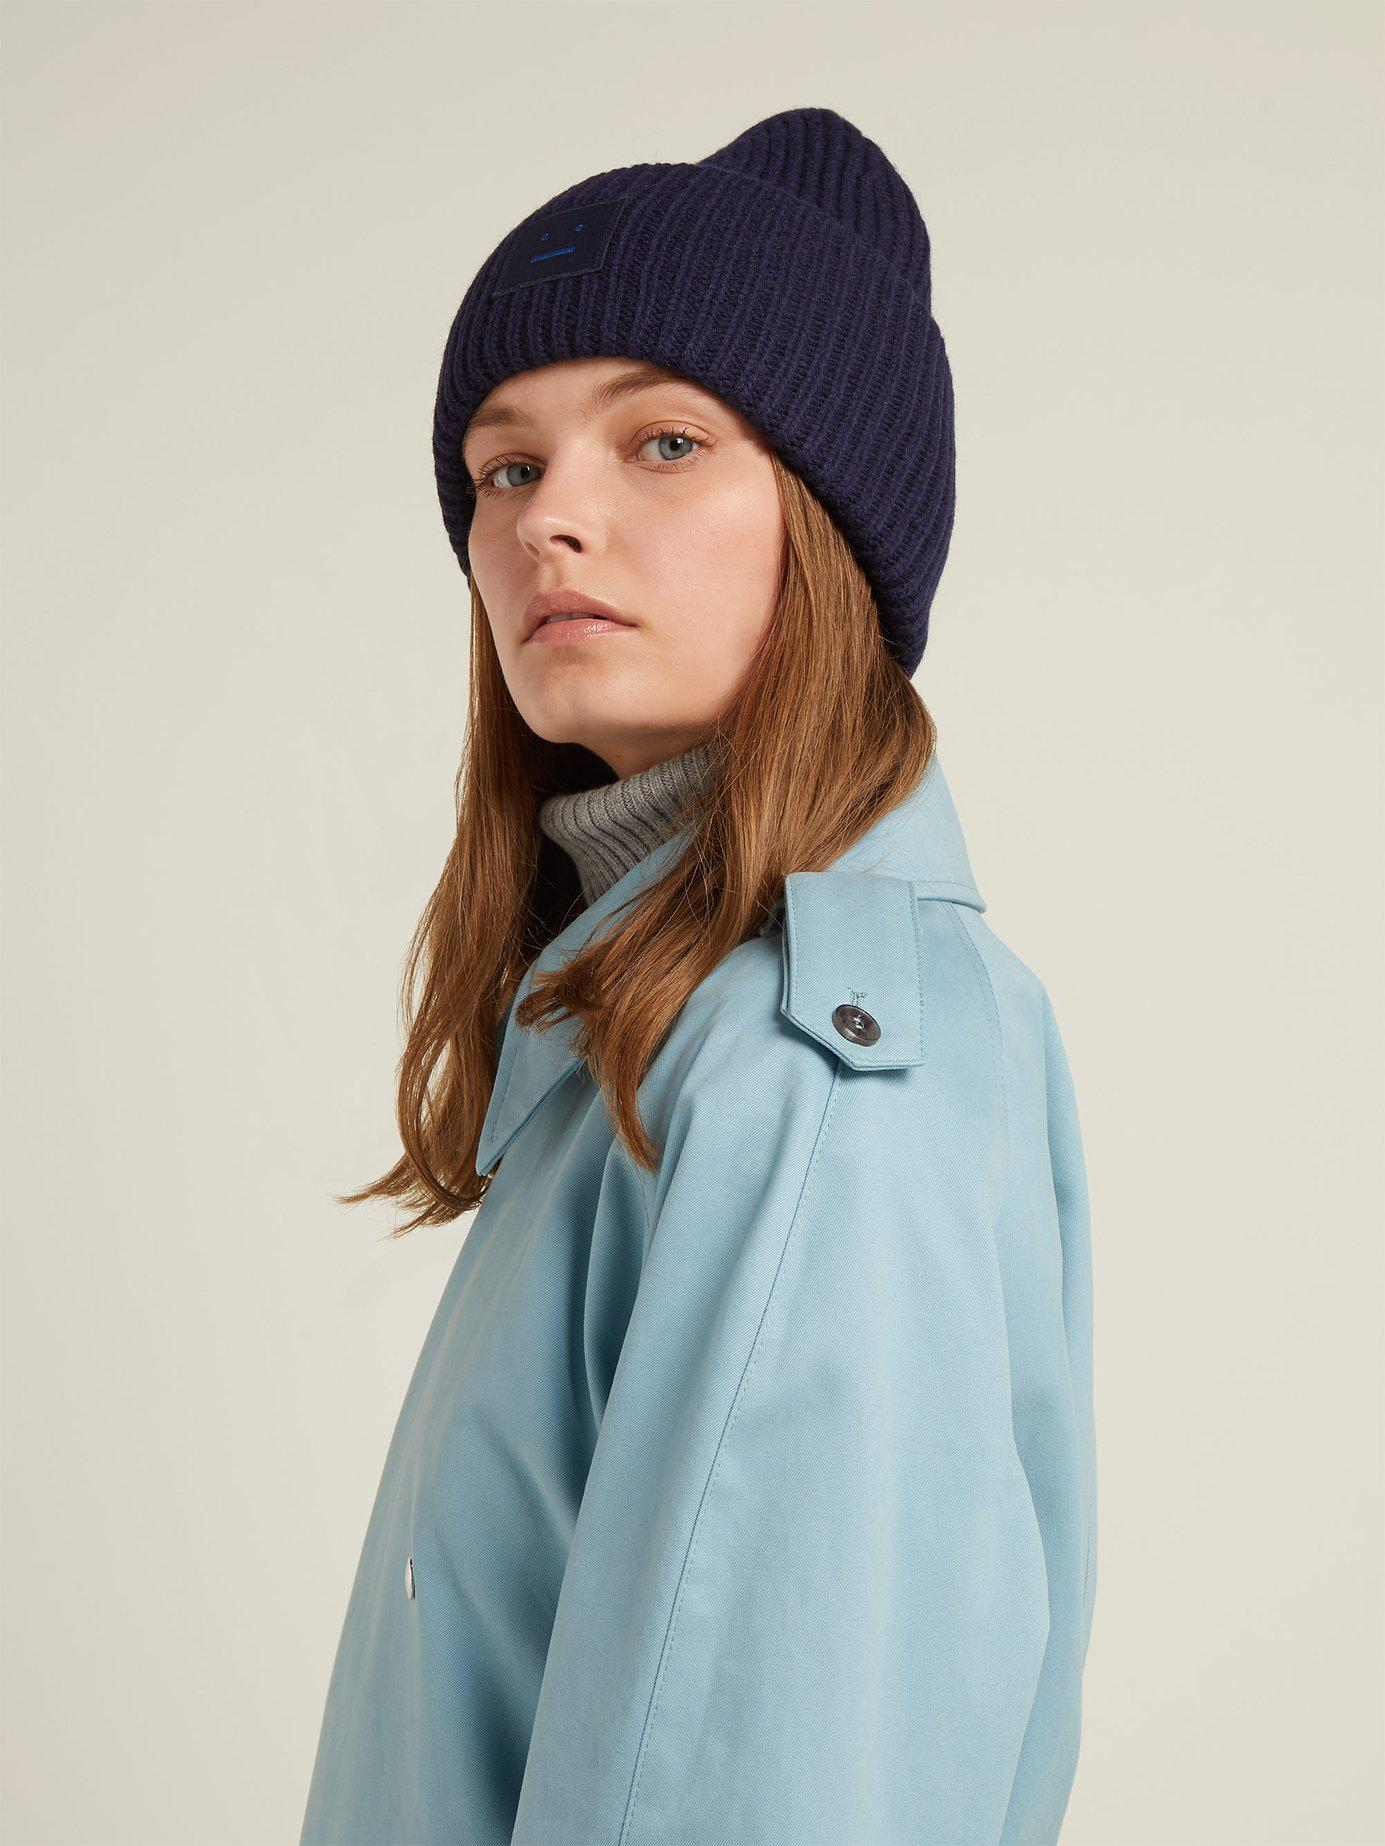 a62ac13c54e Lyst - Acne Studios Pansy S Face Ribbed Knit Beanie Hat in Blue